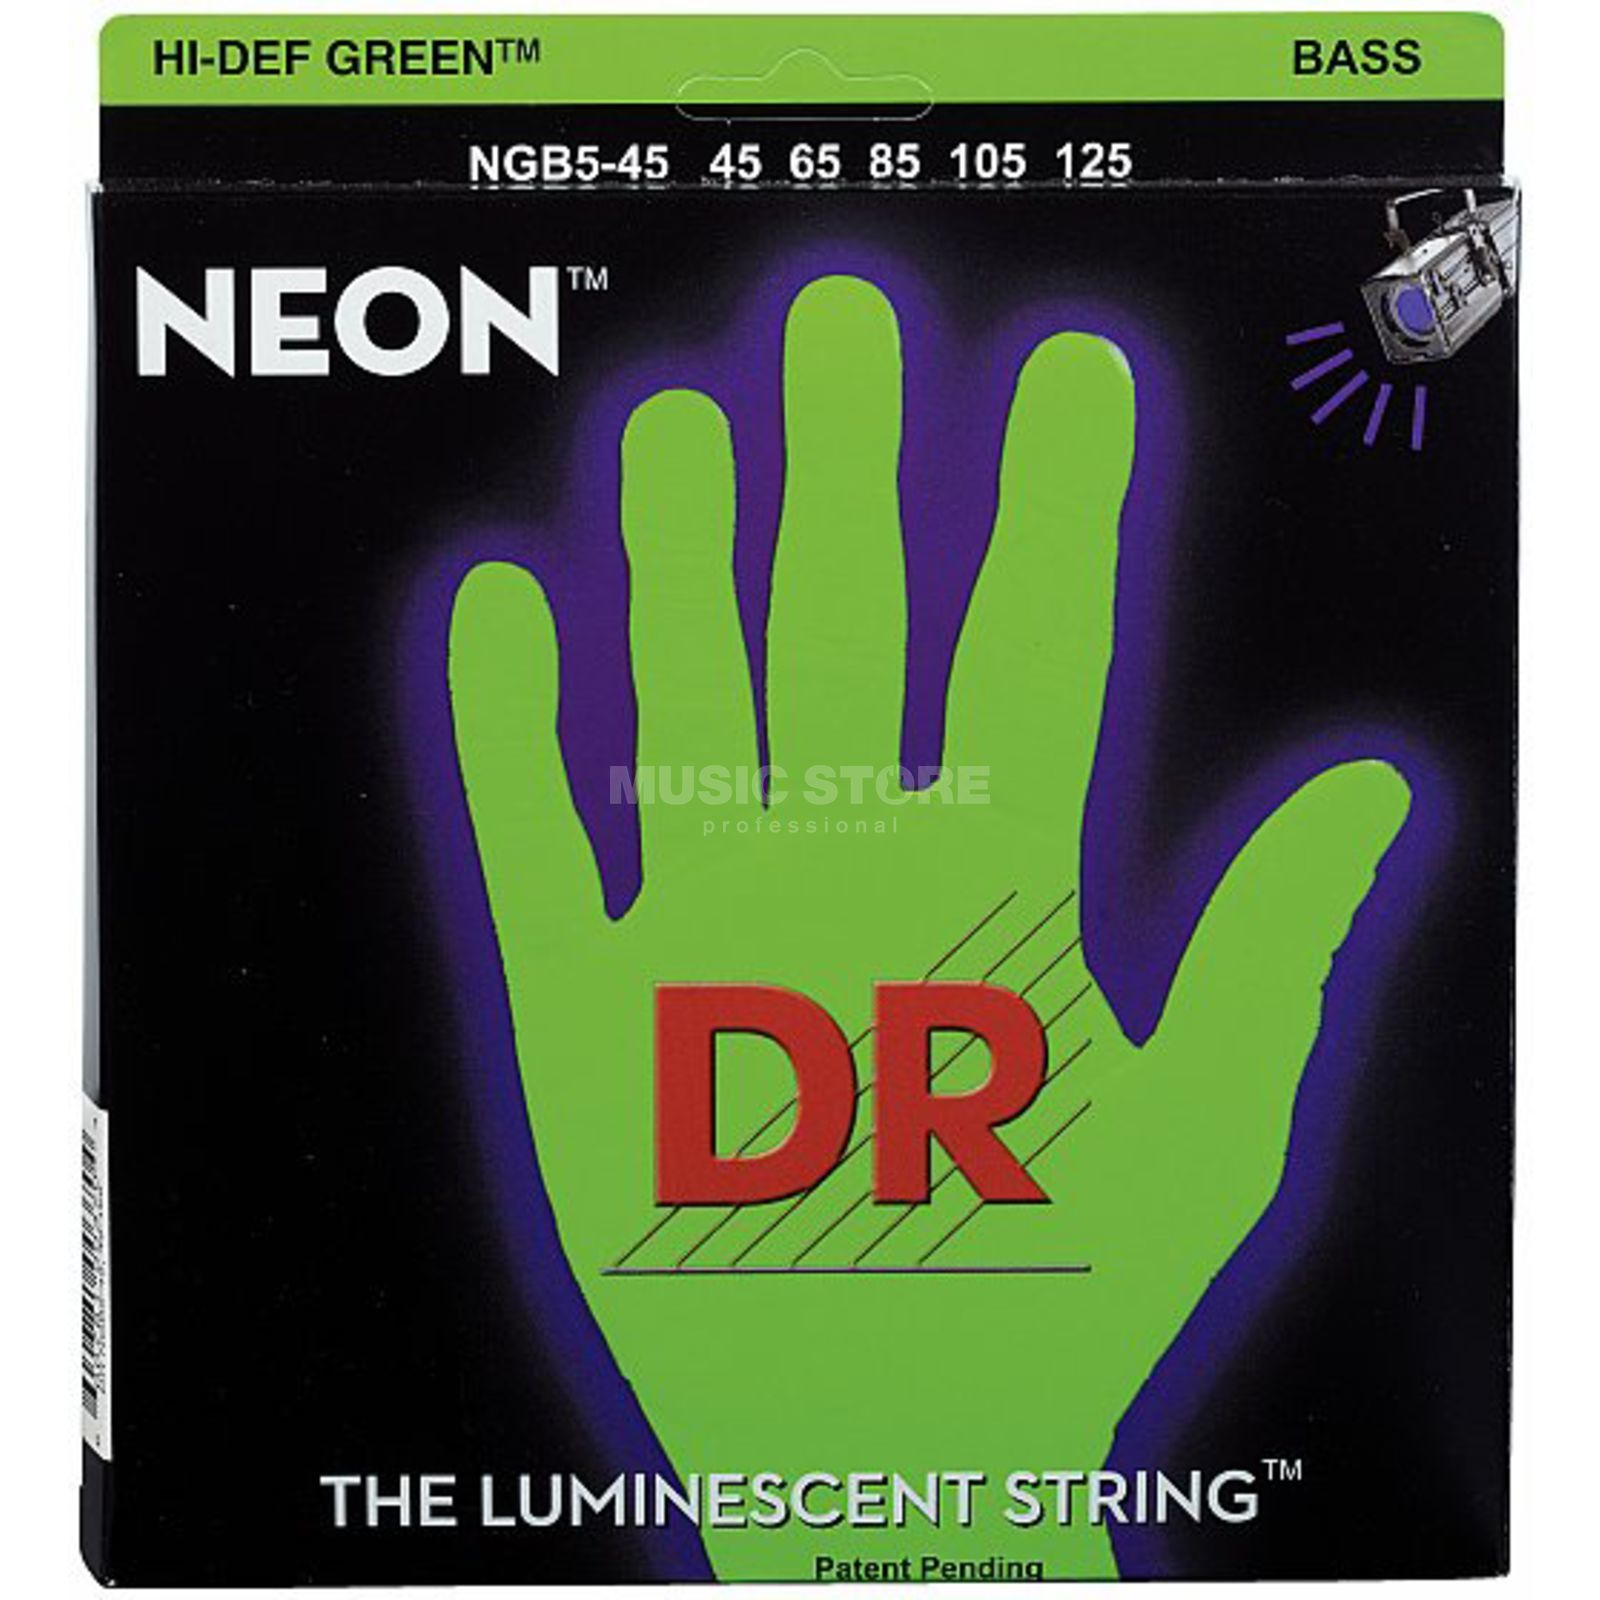 DR 5 Bass Strings 45-125 Hi-Def Neon Green Neon NGB5-45 Изображение товара